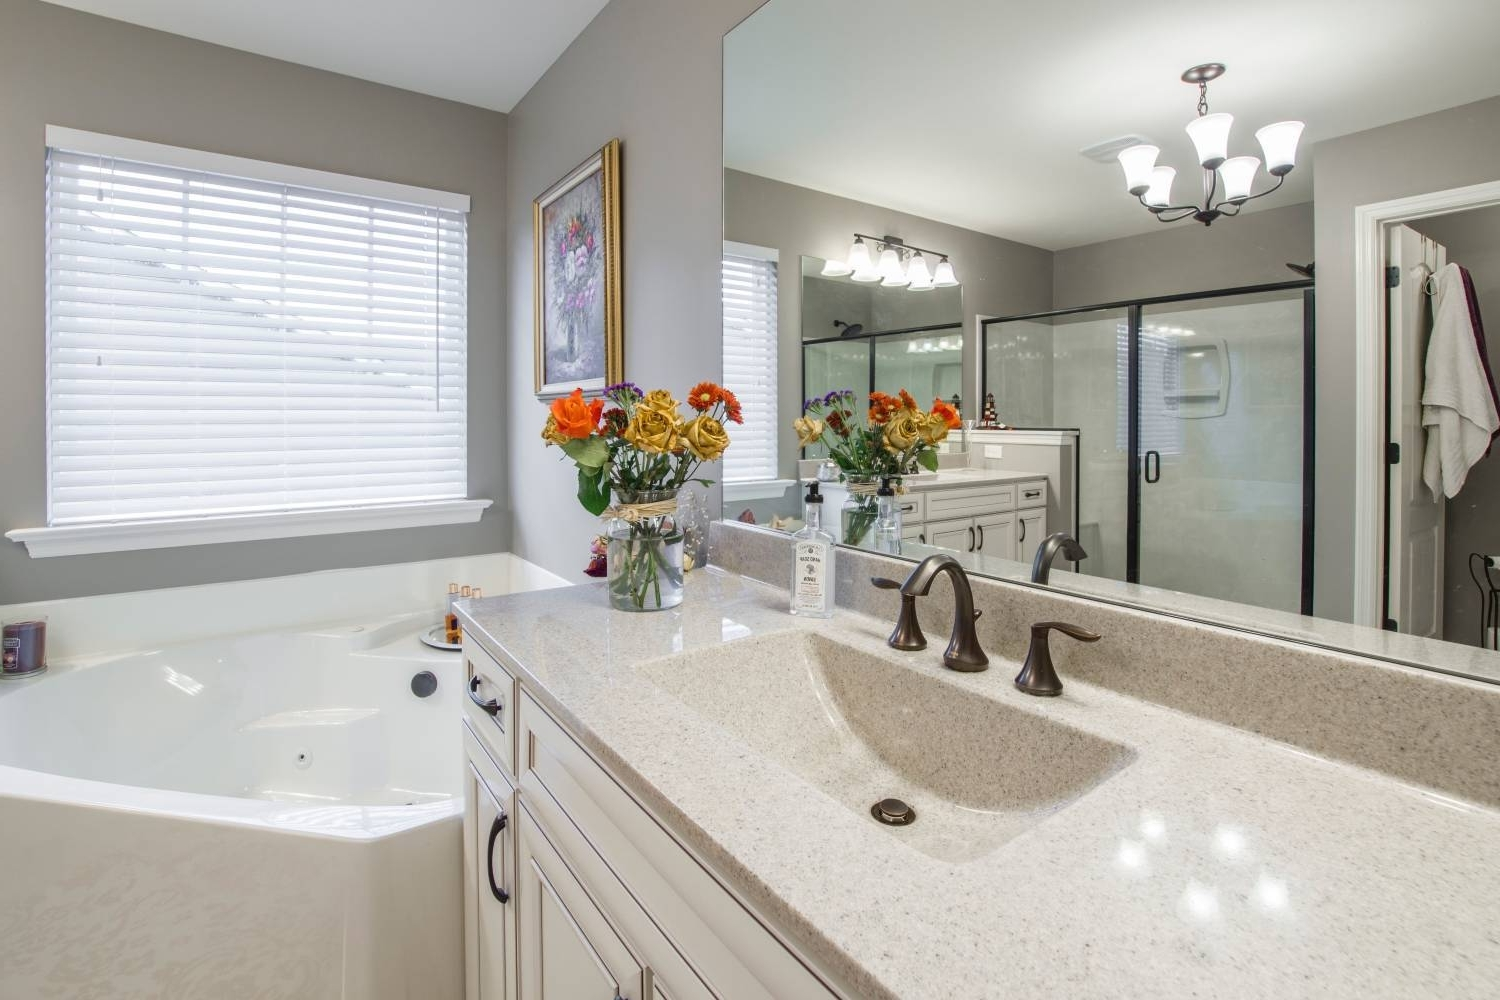 7 Bathroom Remodel Ideas To Look Out For In 2020 | Kbr 30+ Middle Class Bathroom Designs Inspirations